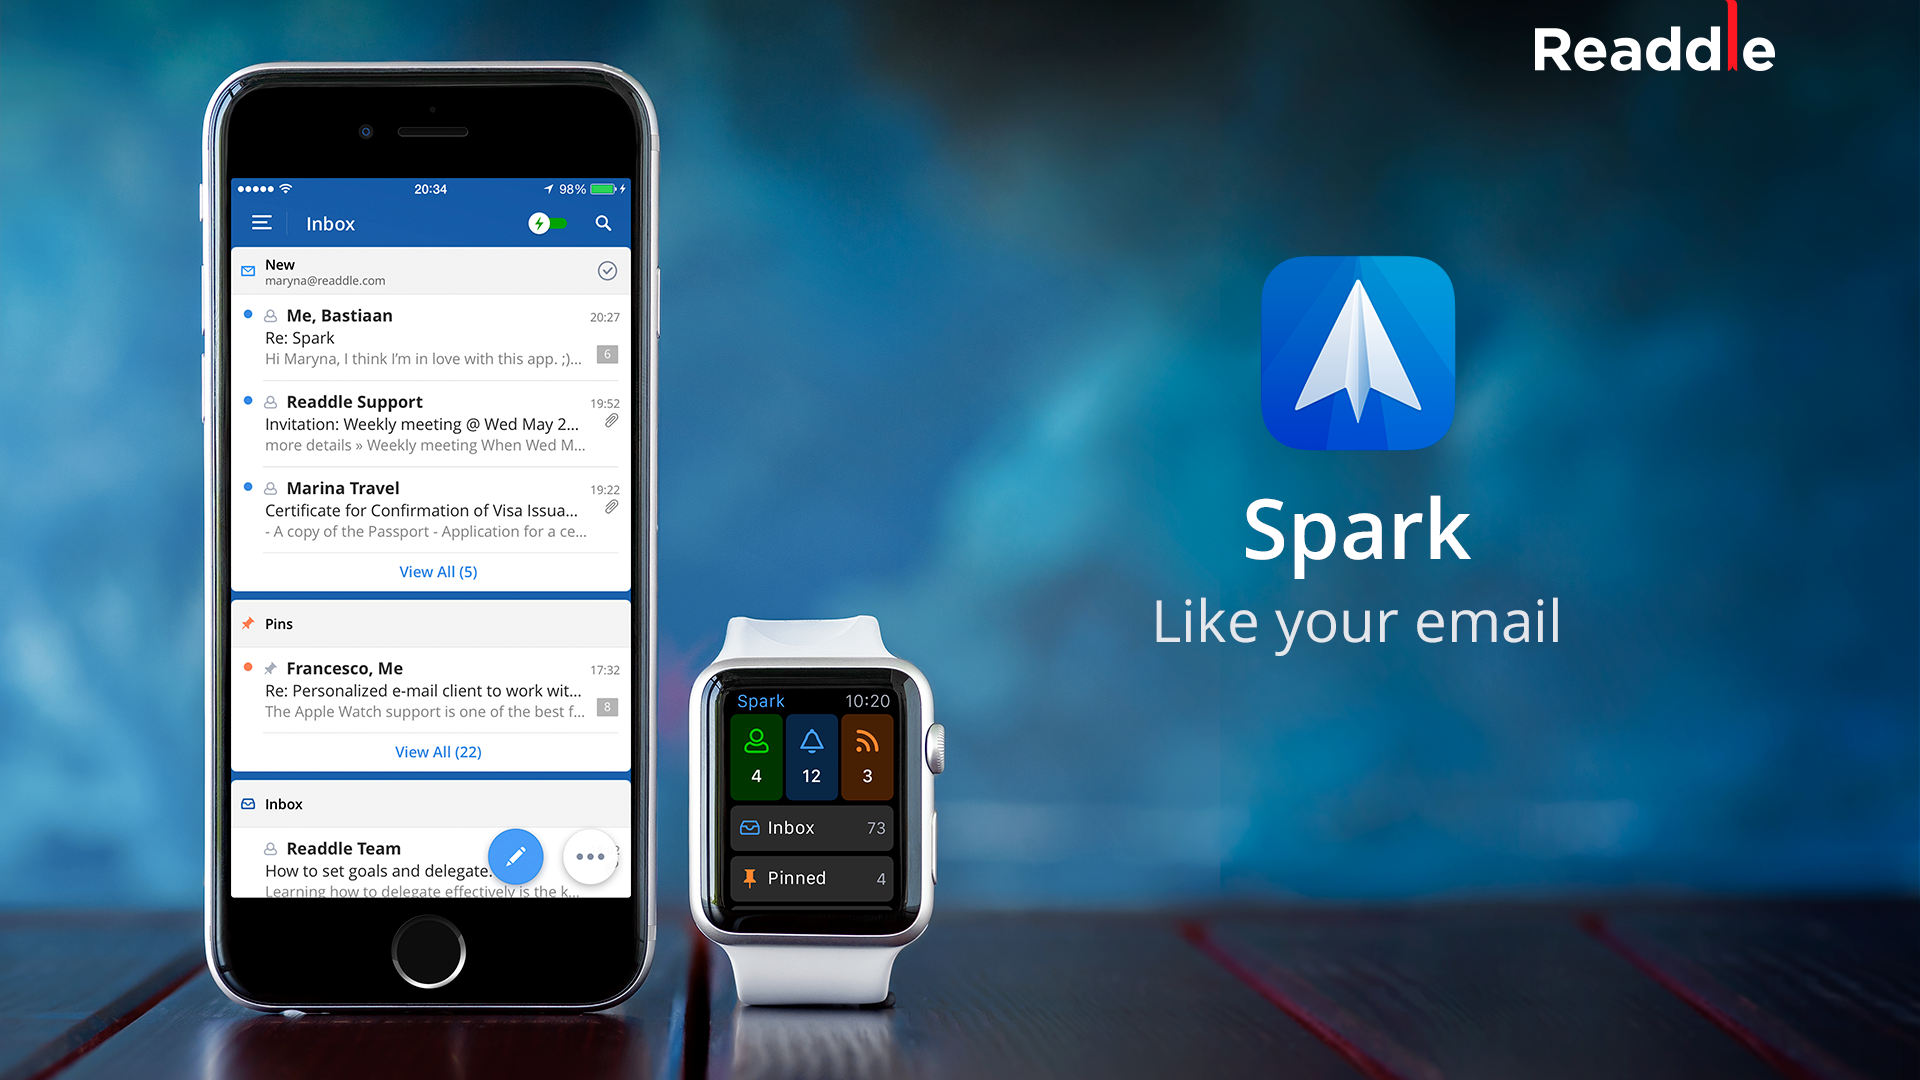 spark-by-readdle-1_0-for-ios-teaser-001.png